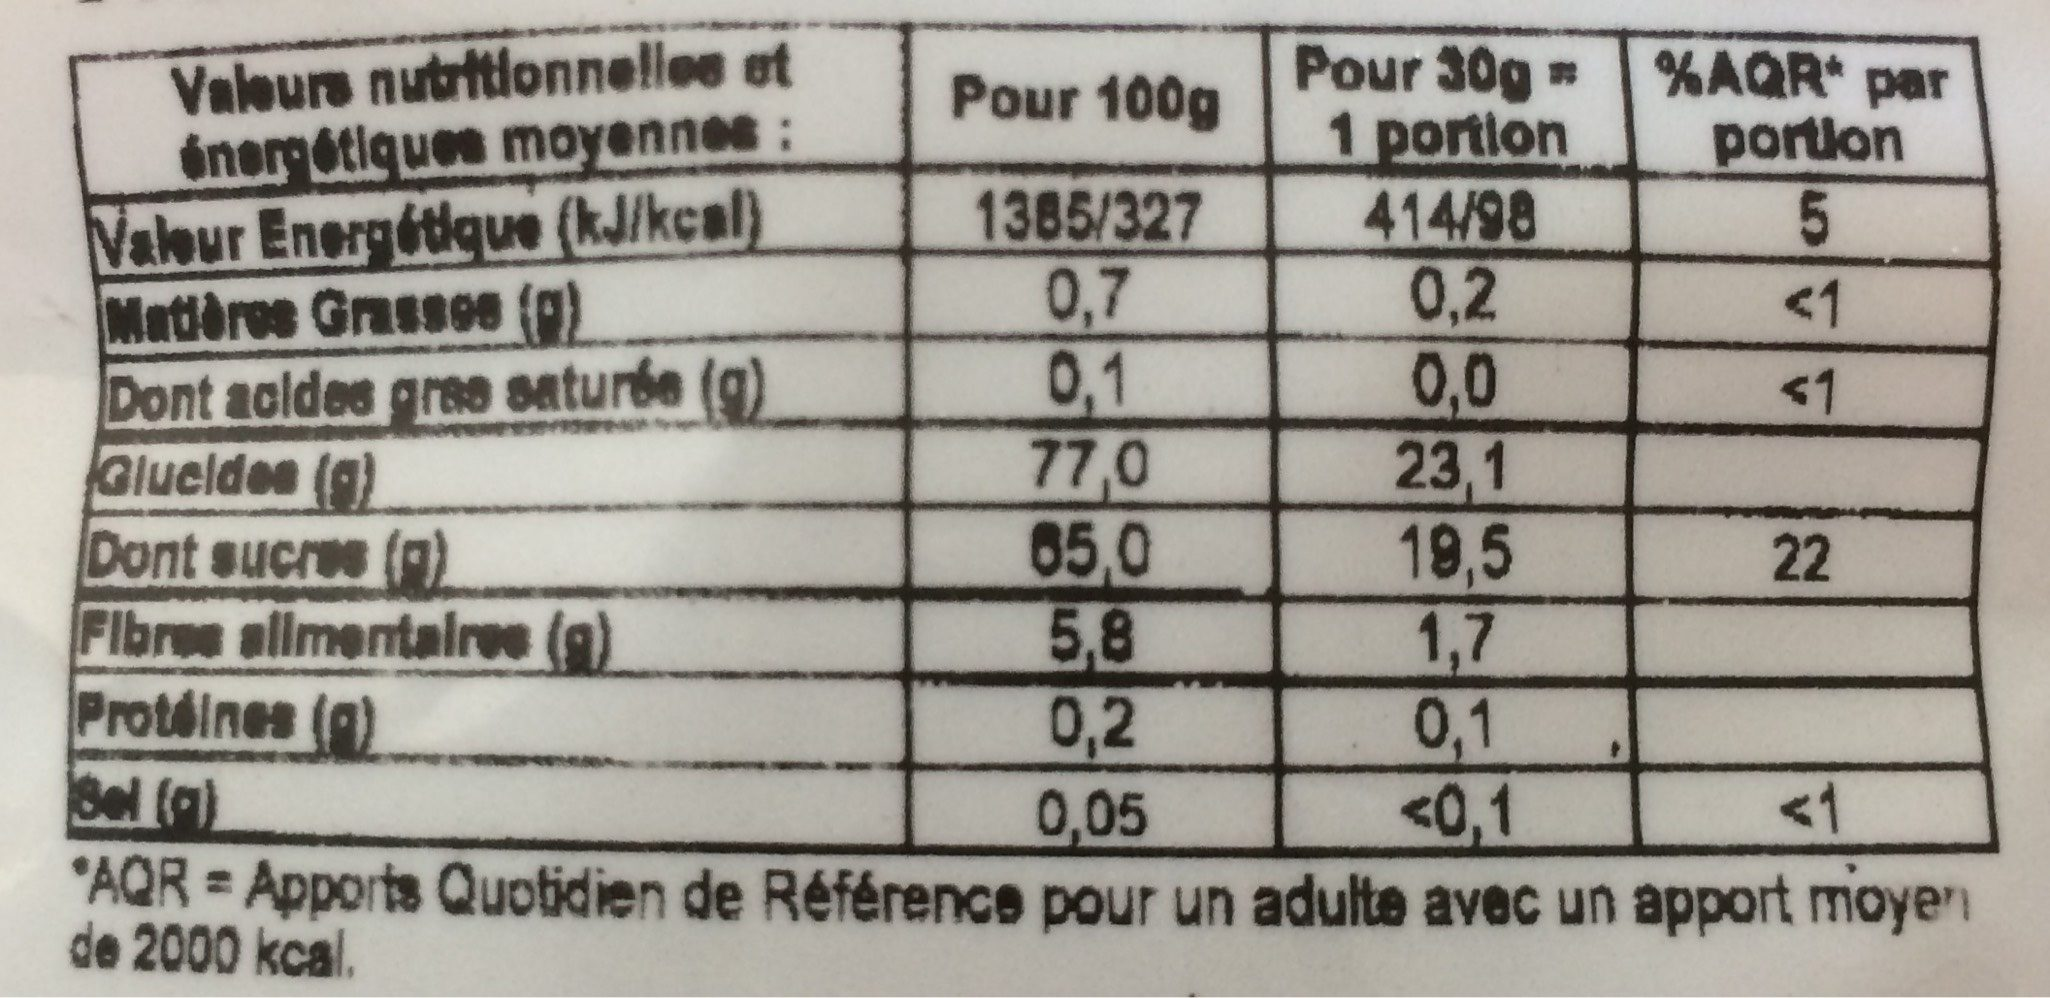 Cranberries - Informations nutritionnelles